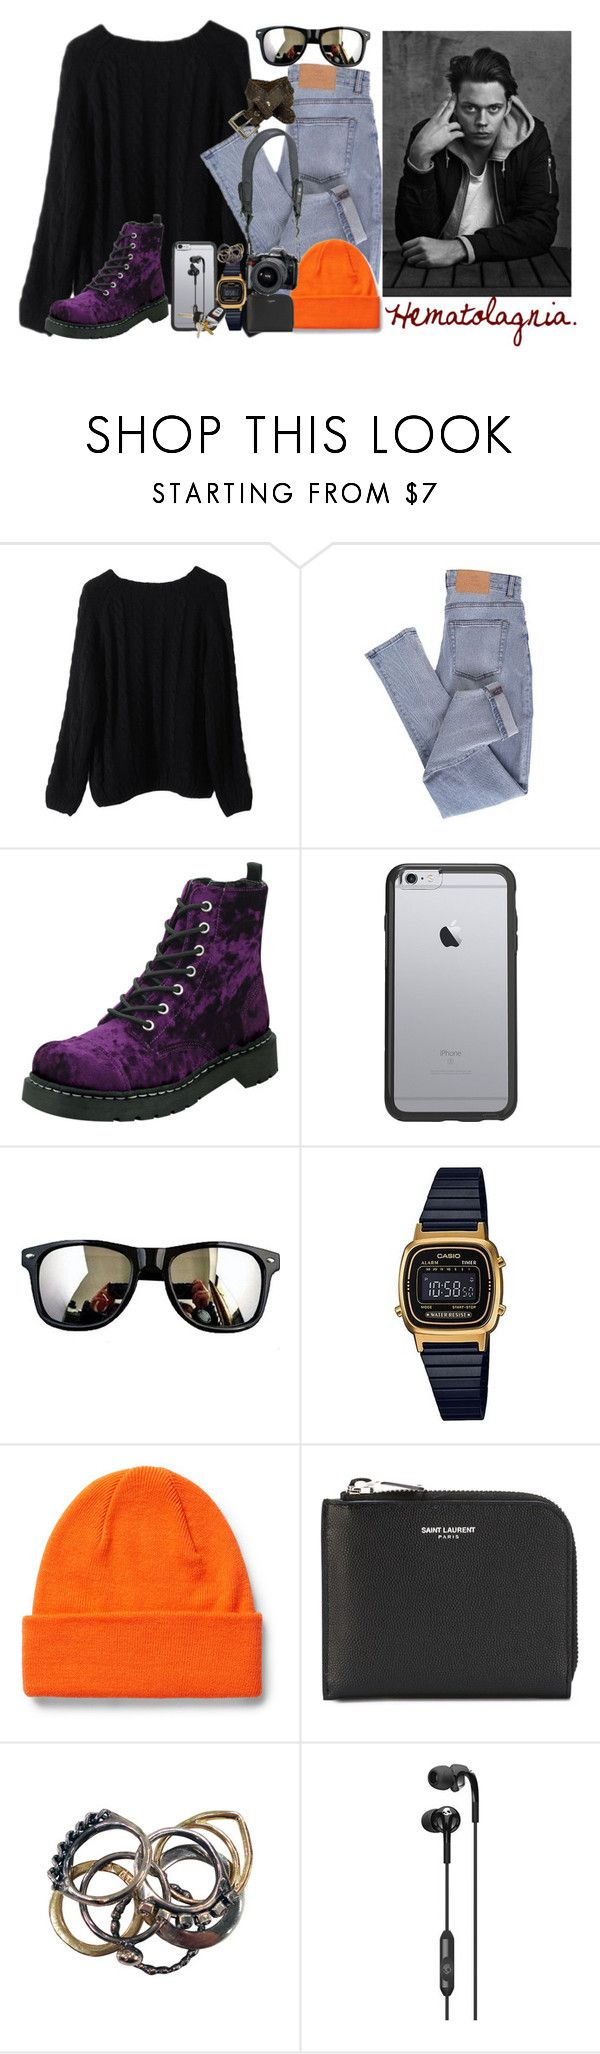 """""""Hematolagnia"""" by narniachicken ❤ liked on Polyvore featuring Cheap Monday, T.U.K., OtterBox, G-Shock, Yves Saint Laurent, Reef, Iosselliani, Skullcandy and Daytrip"""